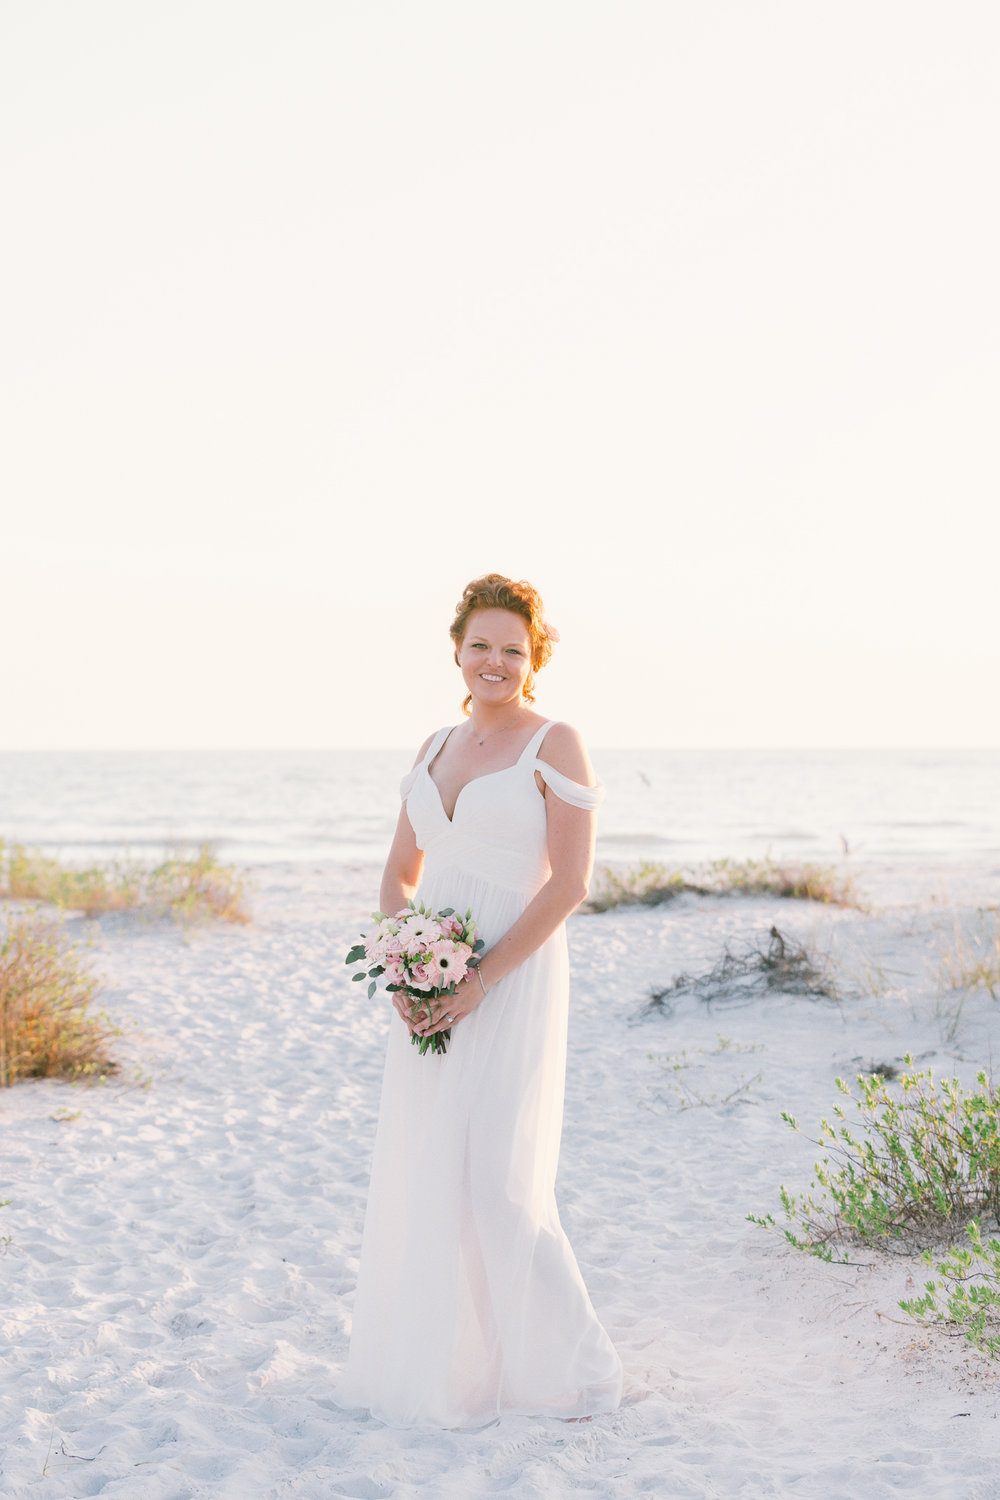 Sarasota-beach-wedding-photography, bride-wedding-photo, Florida-beach-wedding